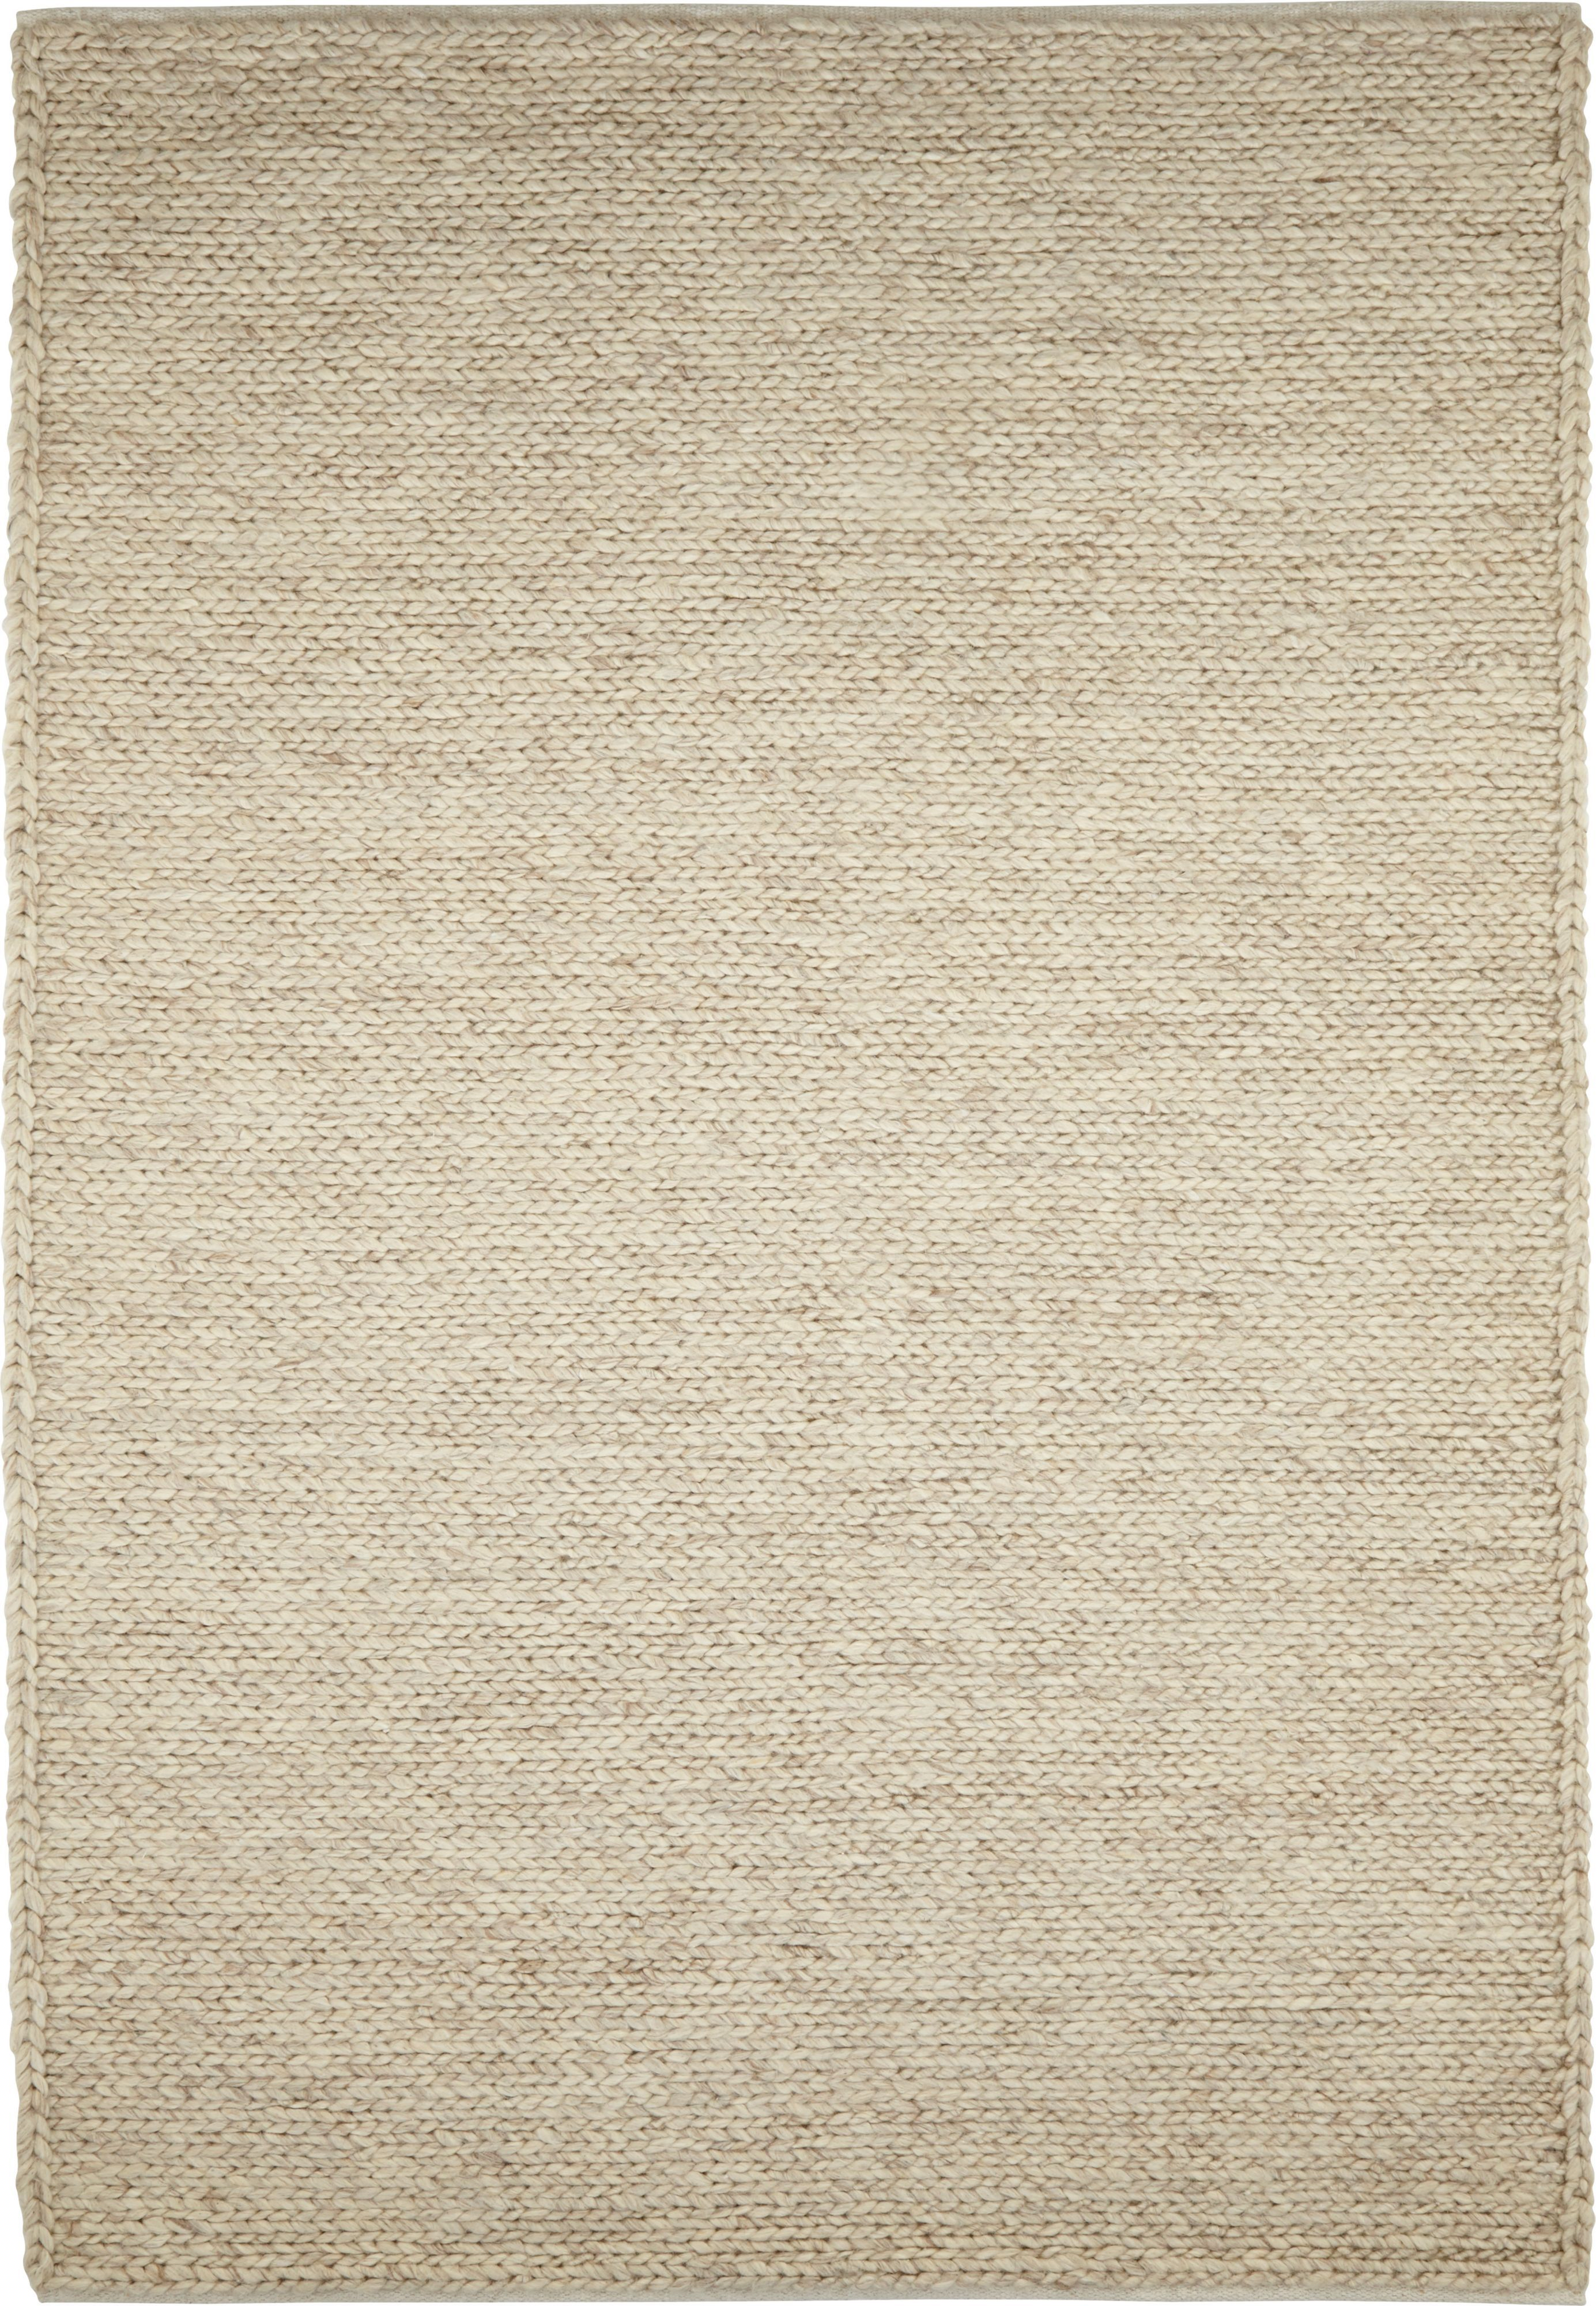 Colours Claudine Beige Thick Knit Rug B Q For All Your Home And Garden Supplies Advice On The Latest Diy Trends